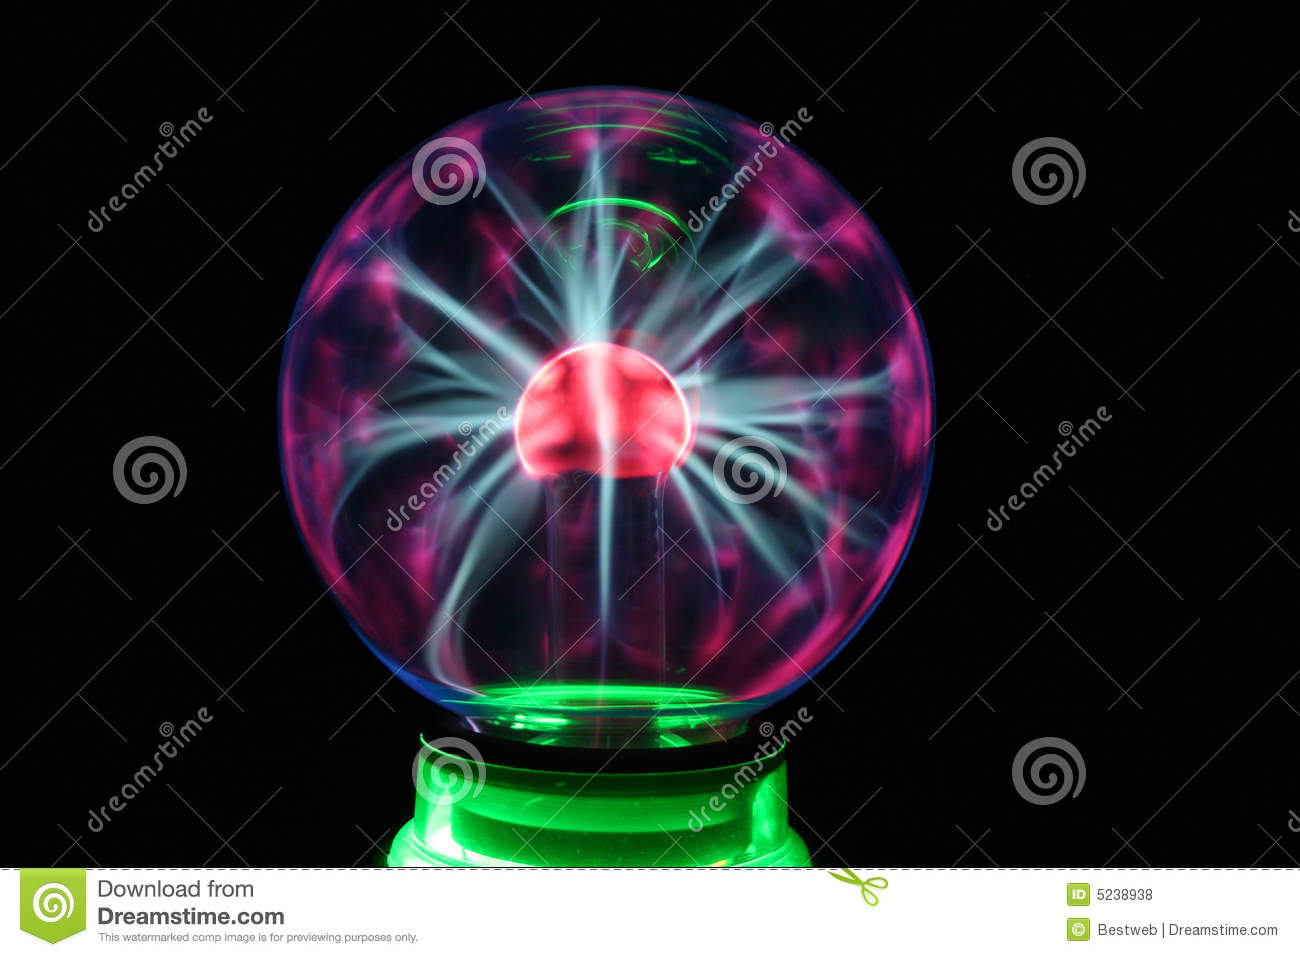 Tesla Generator Plans Free Downloaddirectory Contents Of Pdf Power Amplifier Ocl 100w With Mj802 Mj4502 Electronic Projects Electricity Royalty Stock Photos Image 5238938